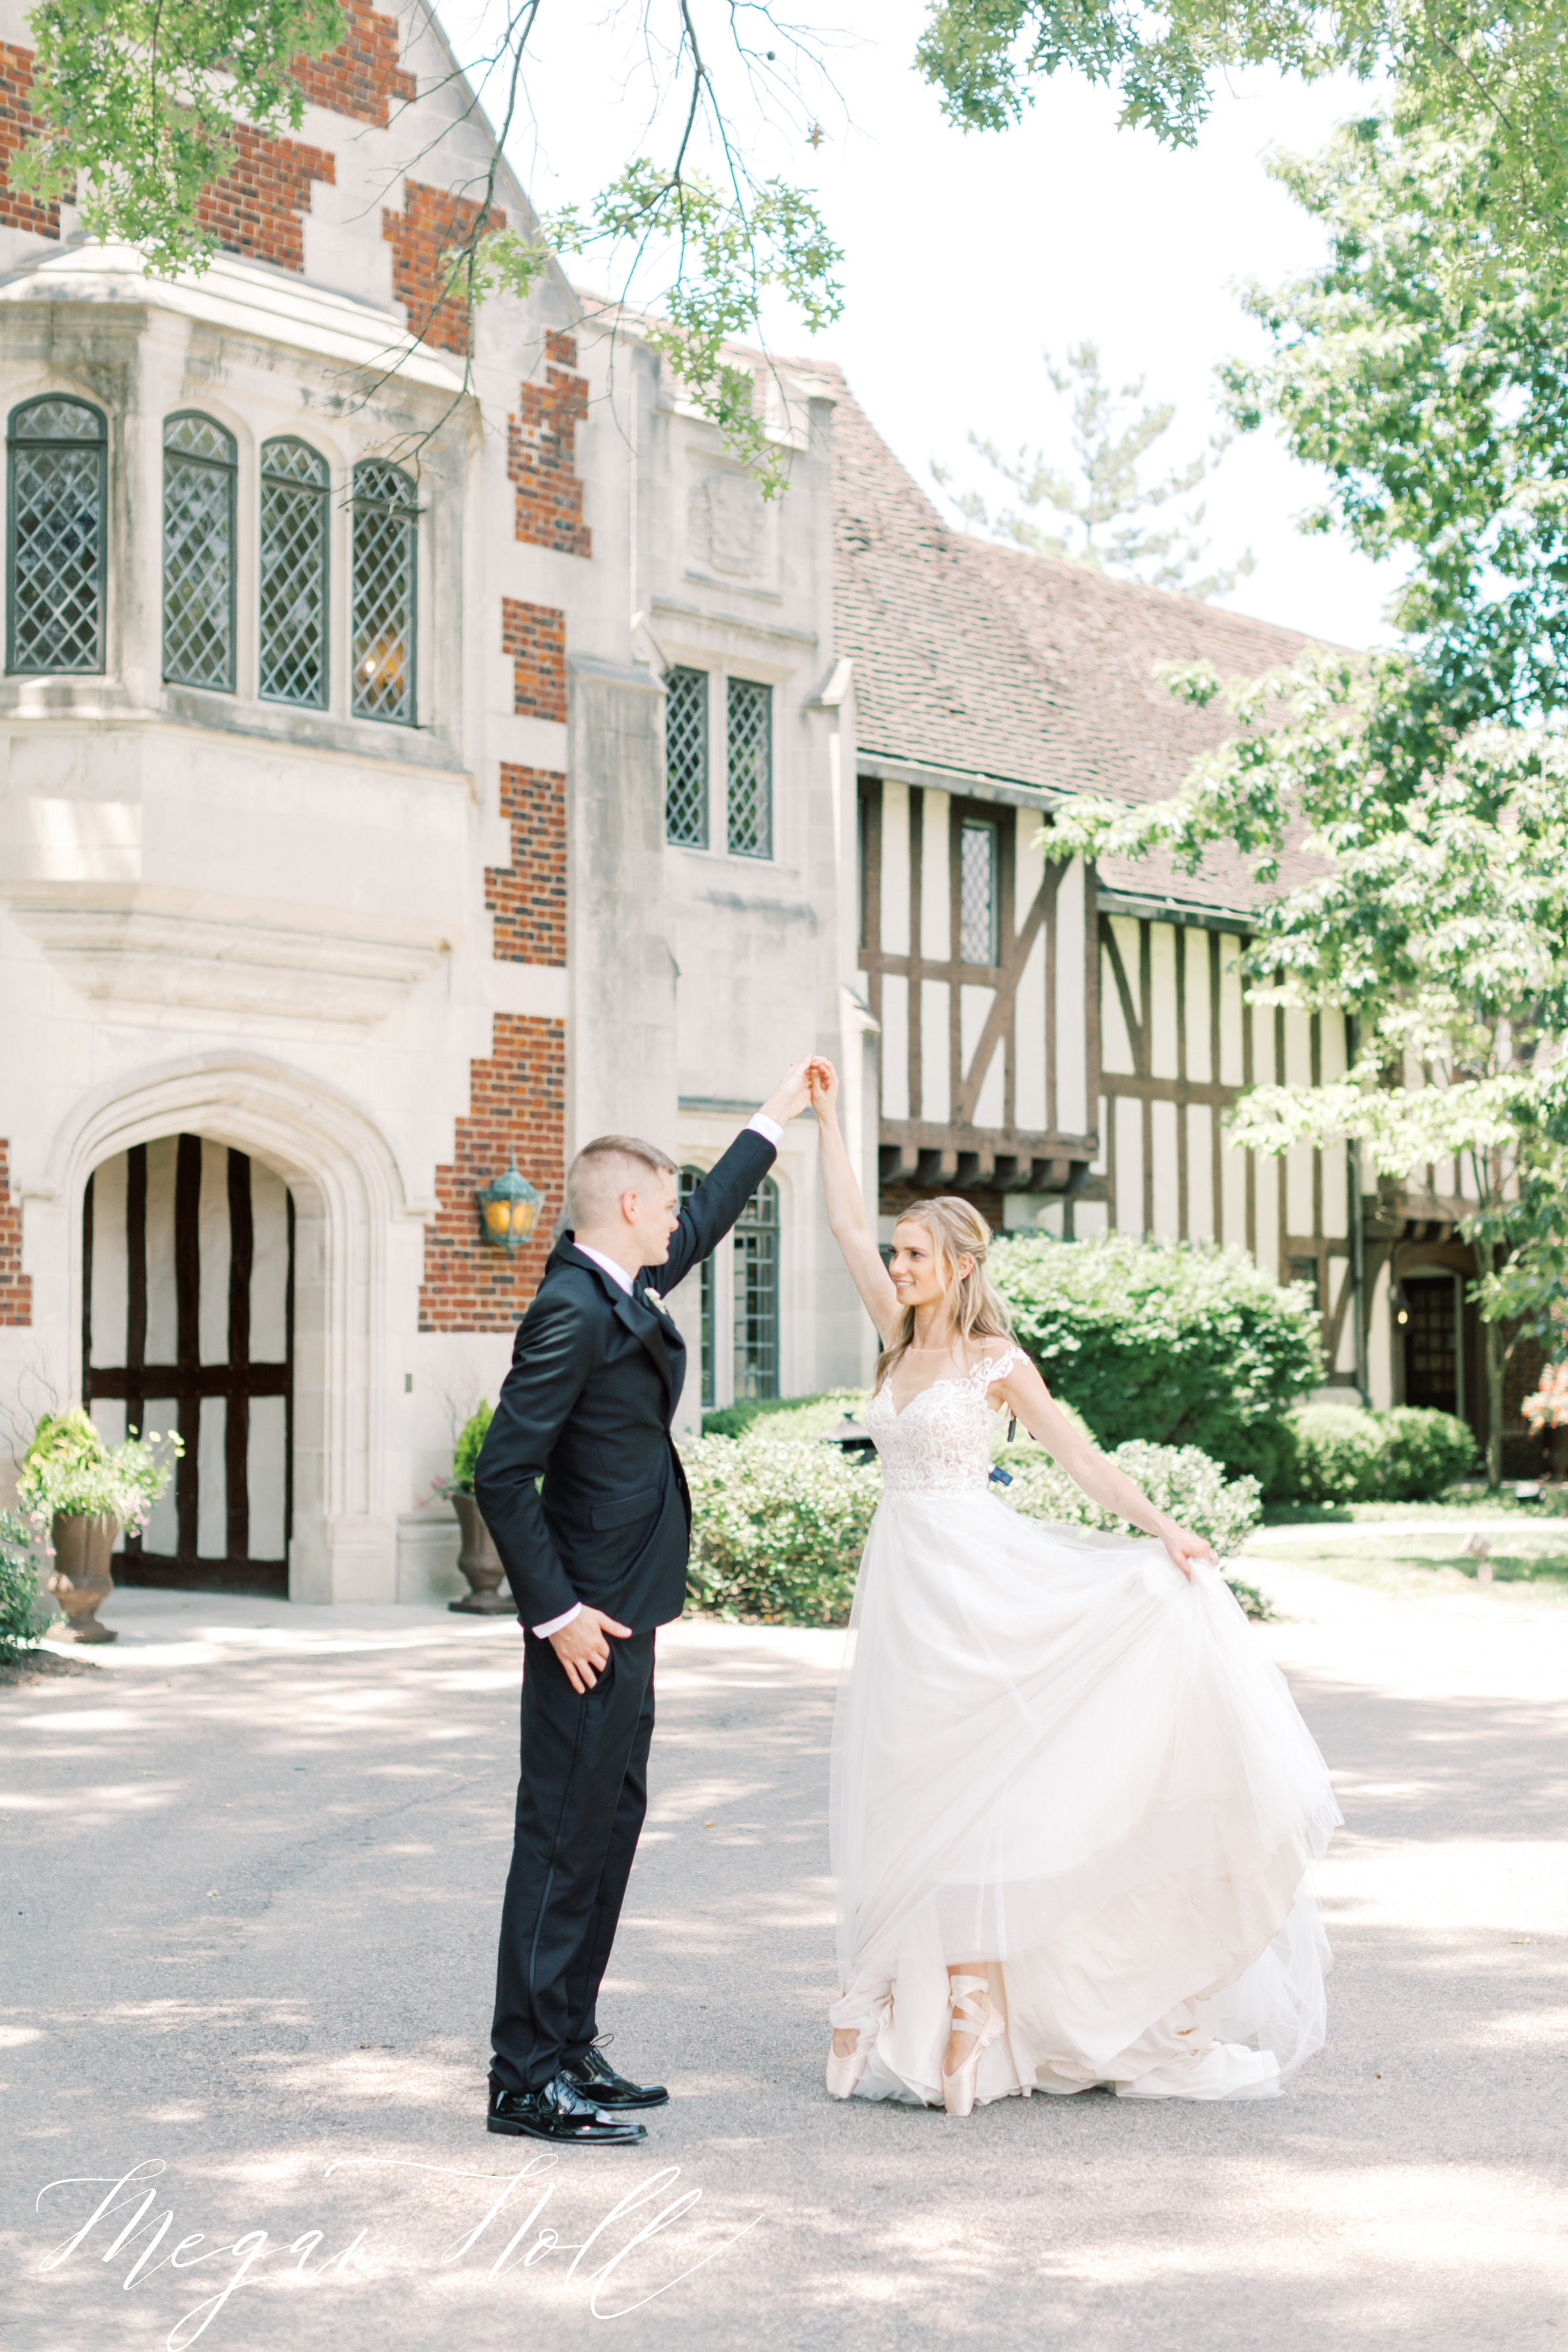 Wedding Pictures at Pinecroft at Crosley Estate in Cincinnati, Ohio